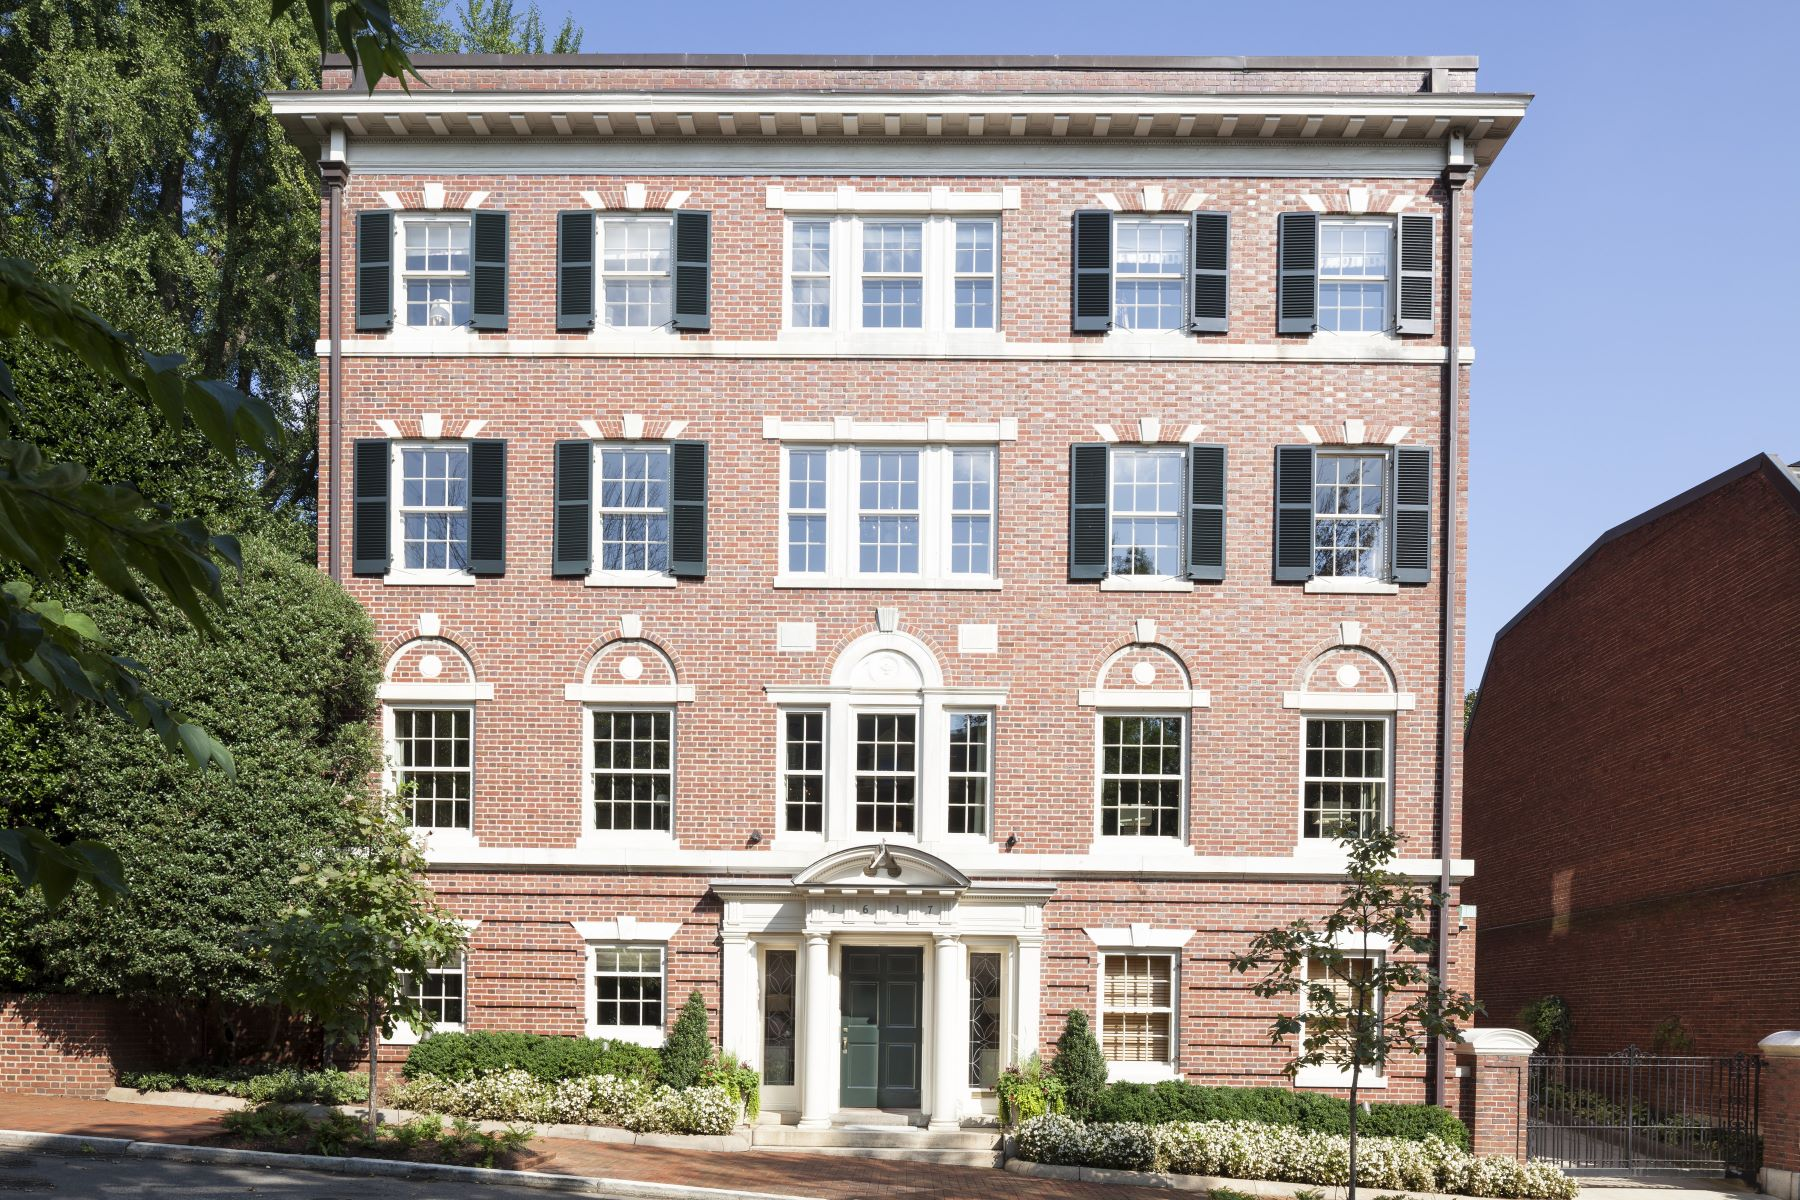 Property for Sale at Hollerith House 1617 29th Street NW Washington, District Of Columbia 20007 United States